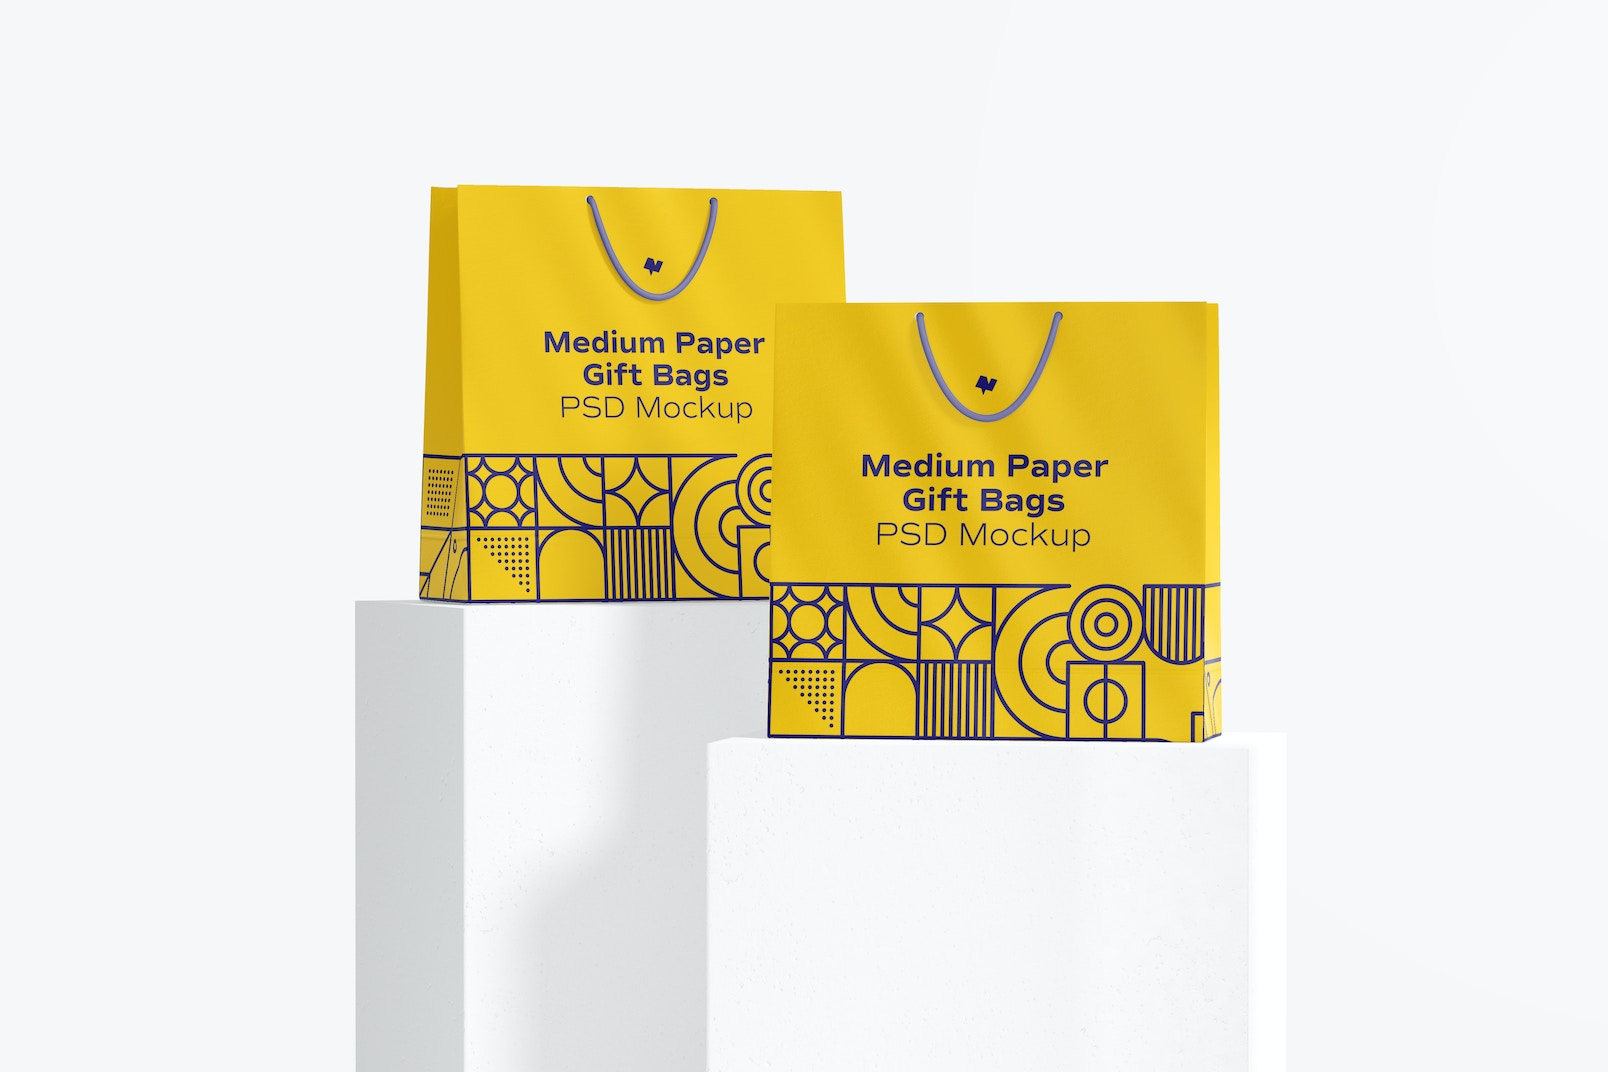 Medium Paper Gift Bags With Rope Handle Set Mockup